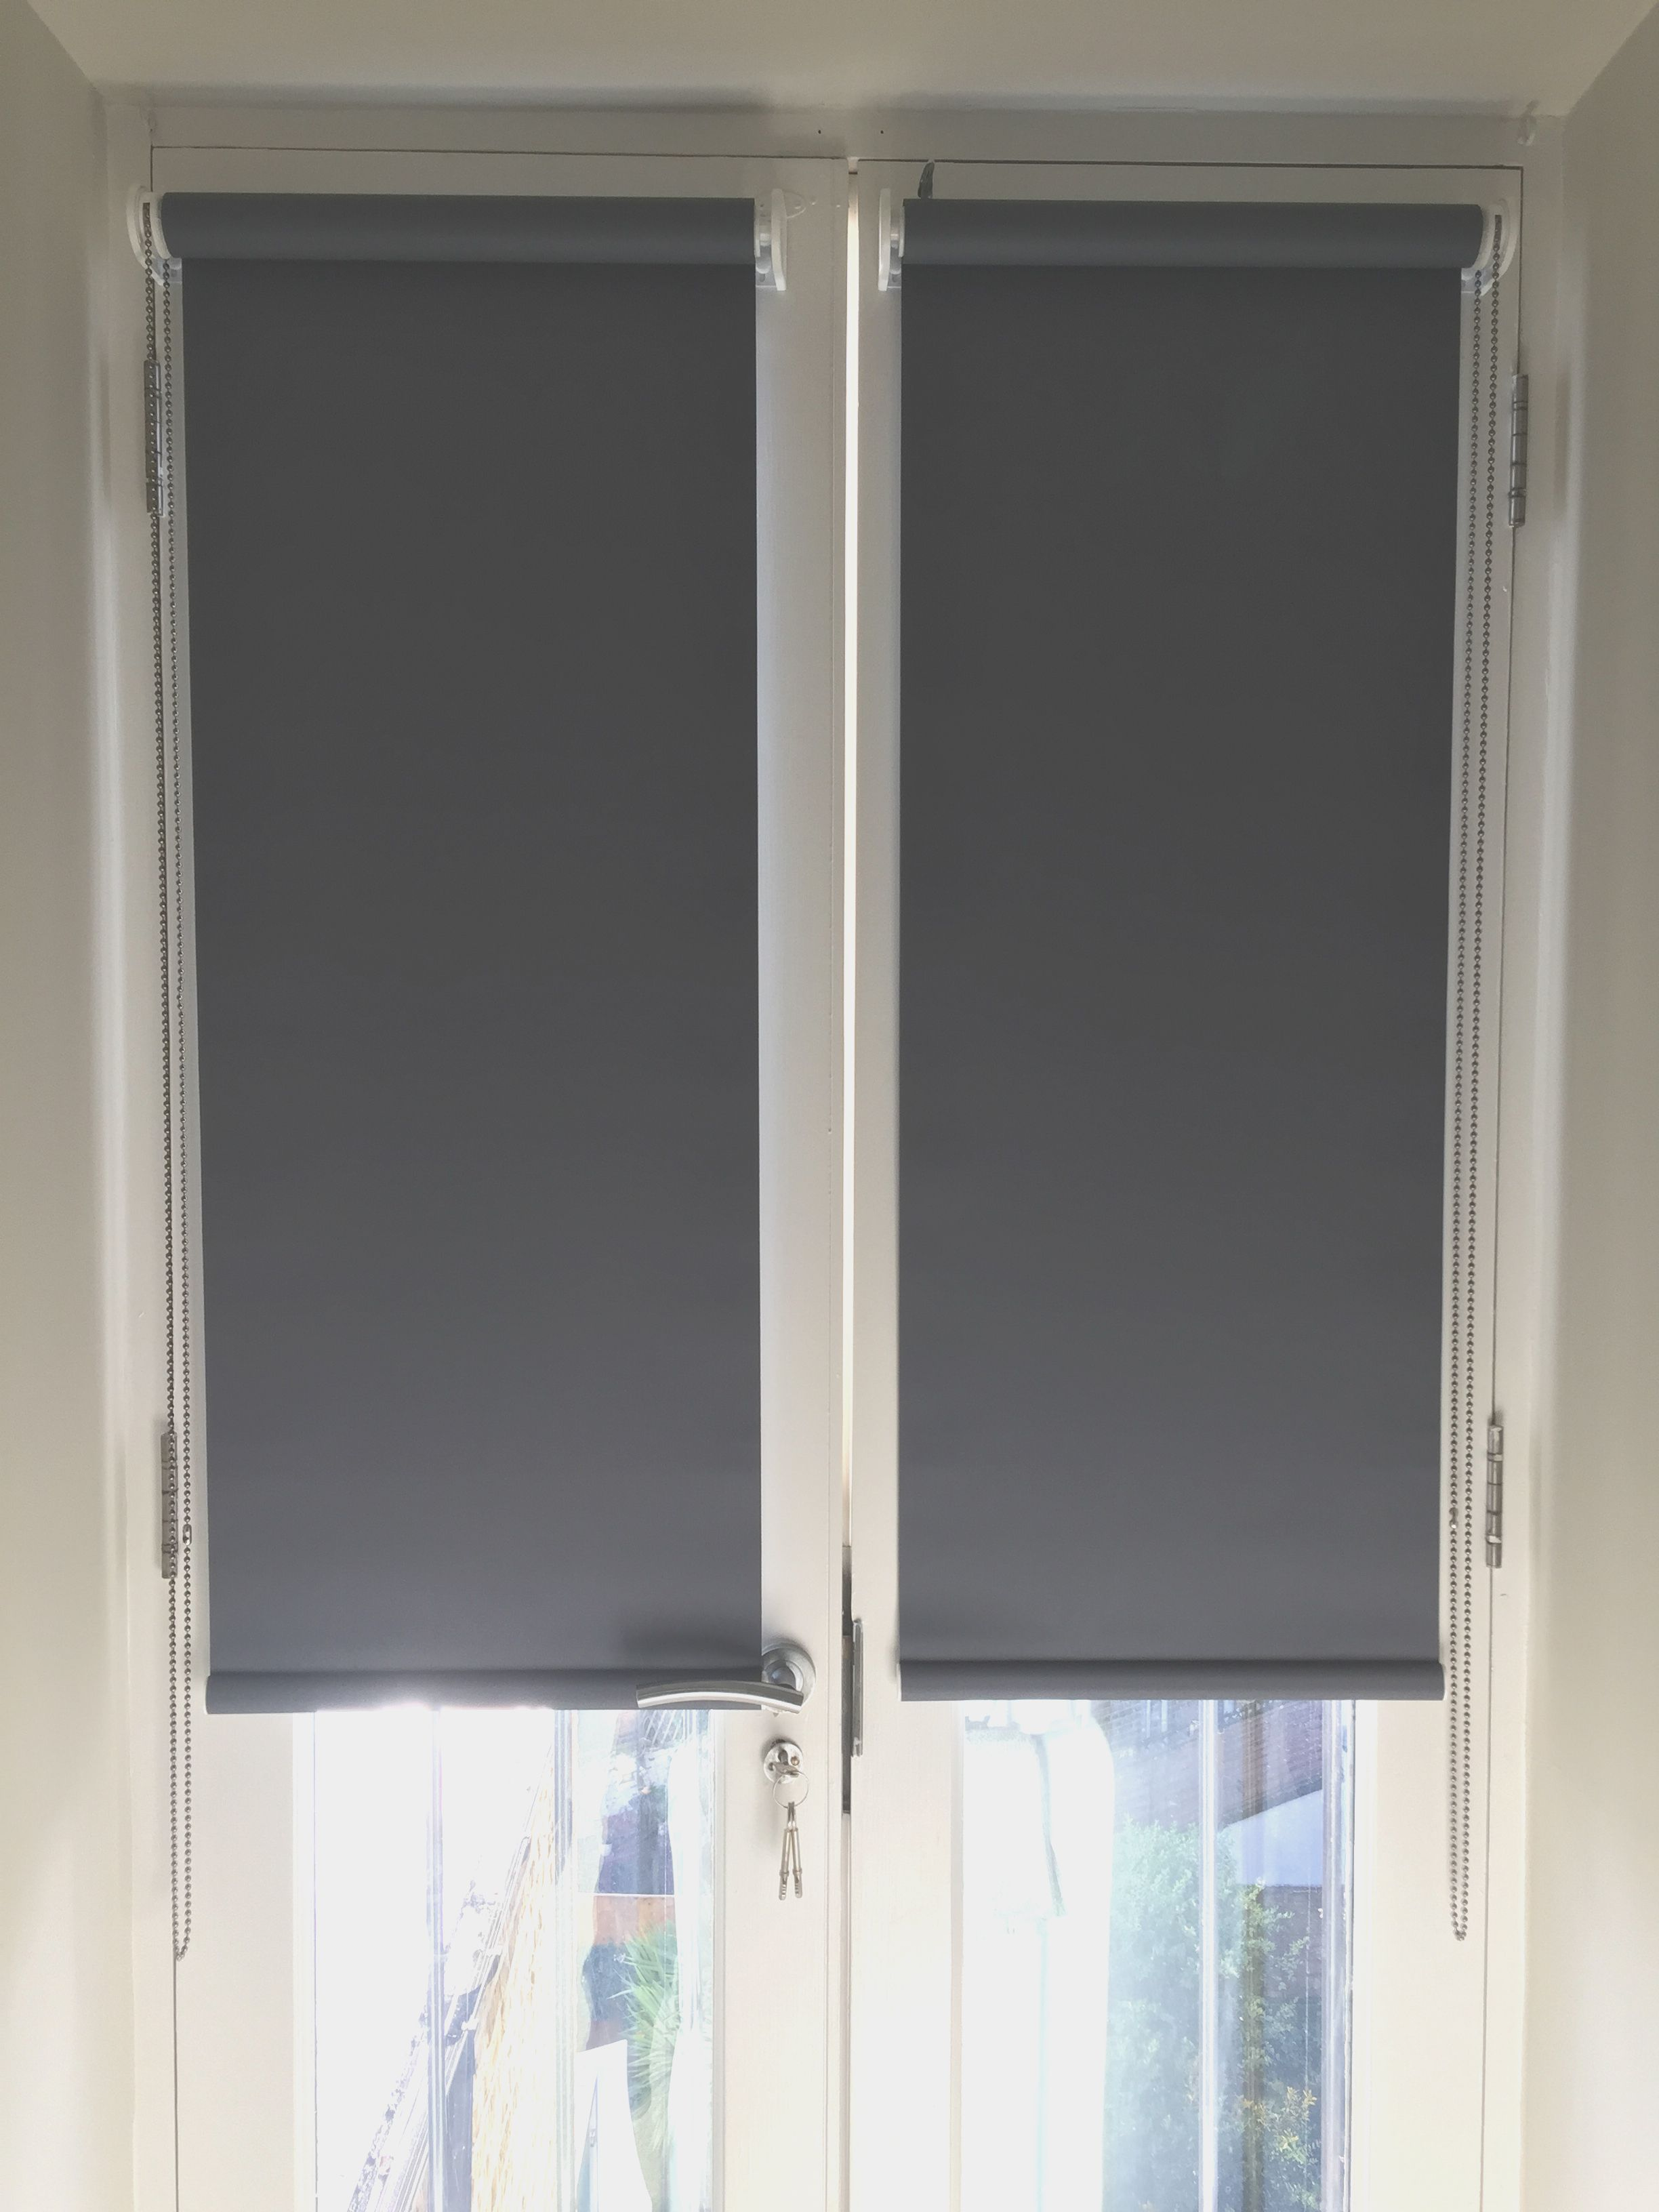 Blackout Roller Blinds For French Doors Installed To Home In Wandsworth London Made The Uk Measure Contemporary